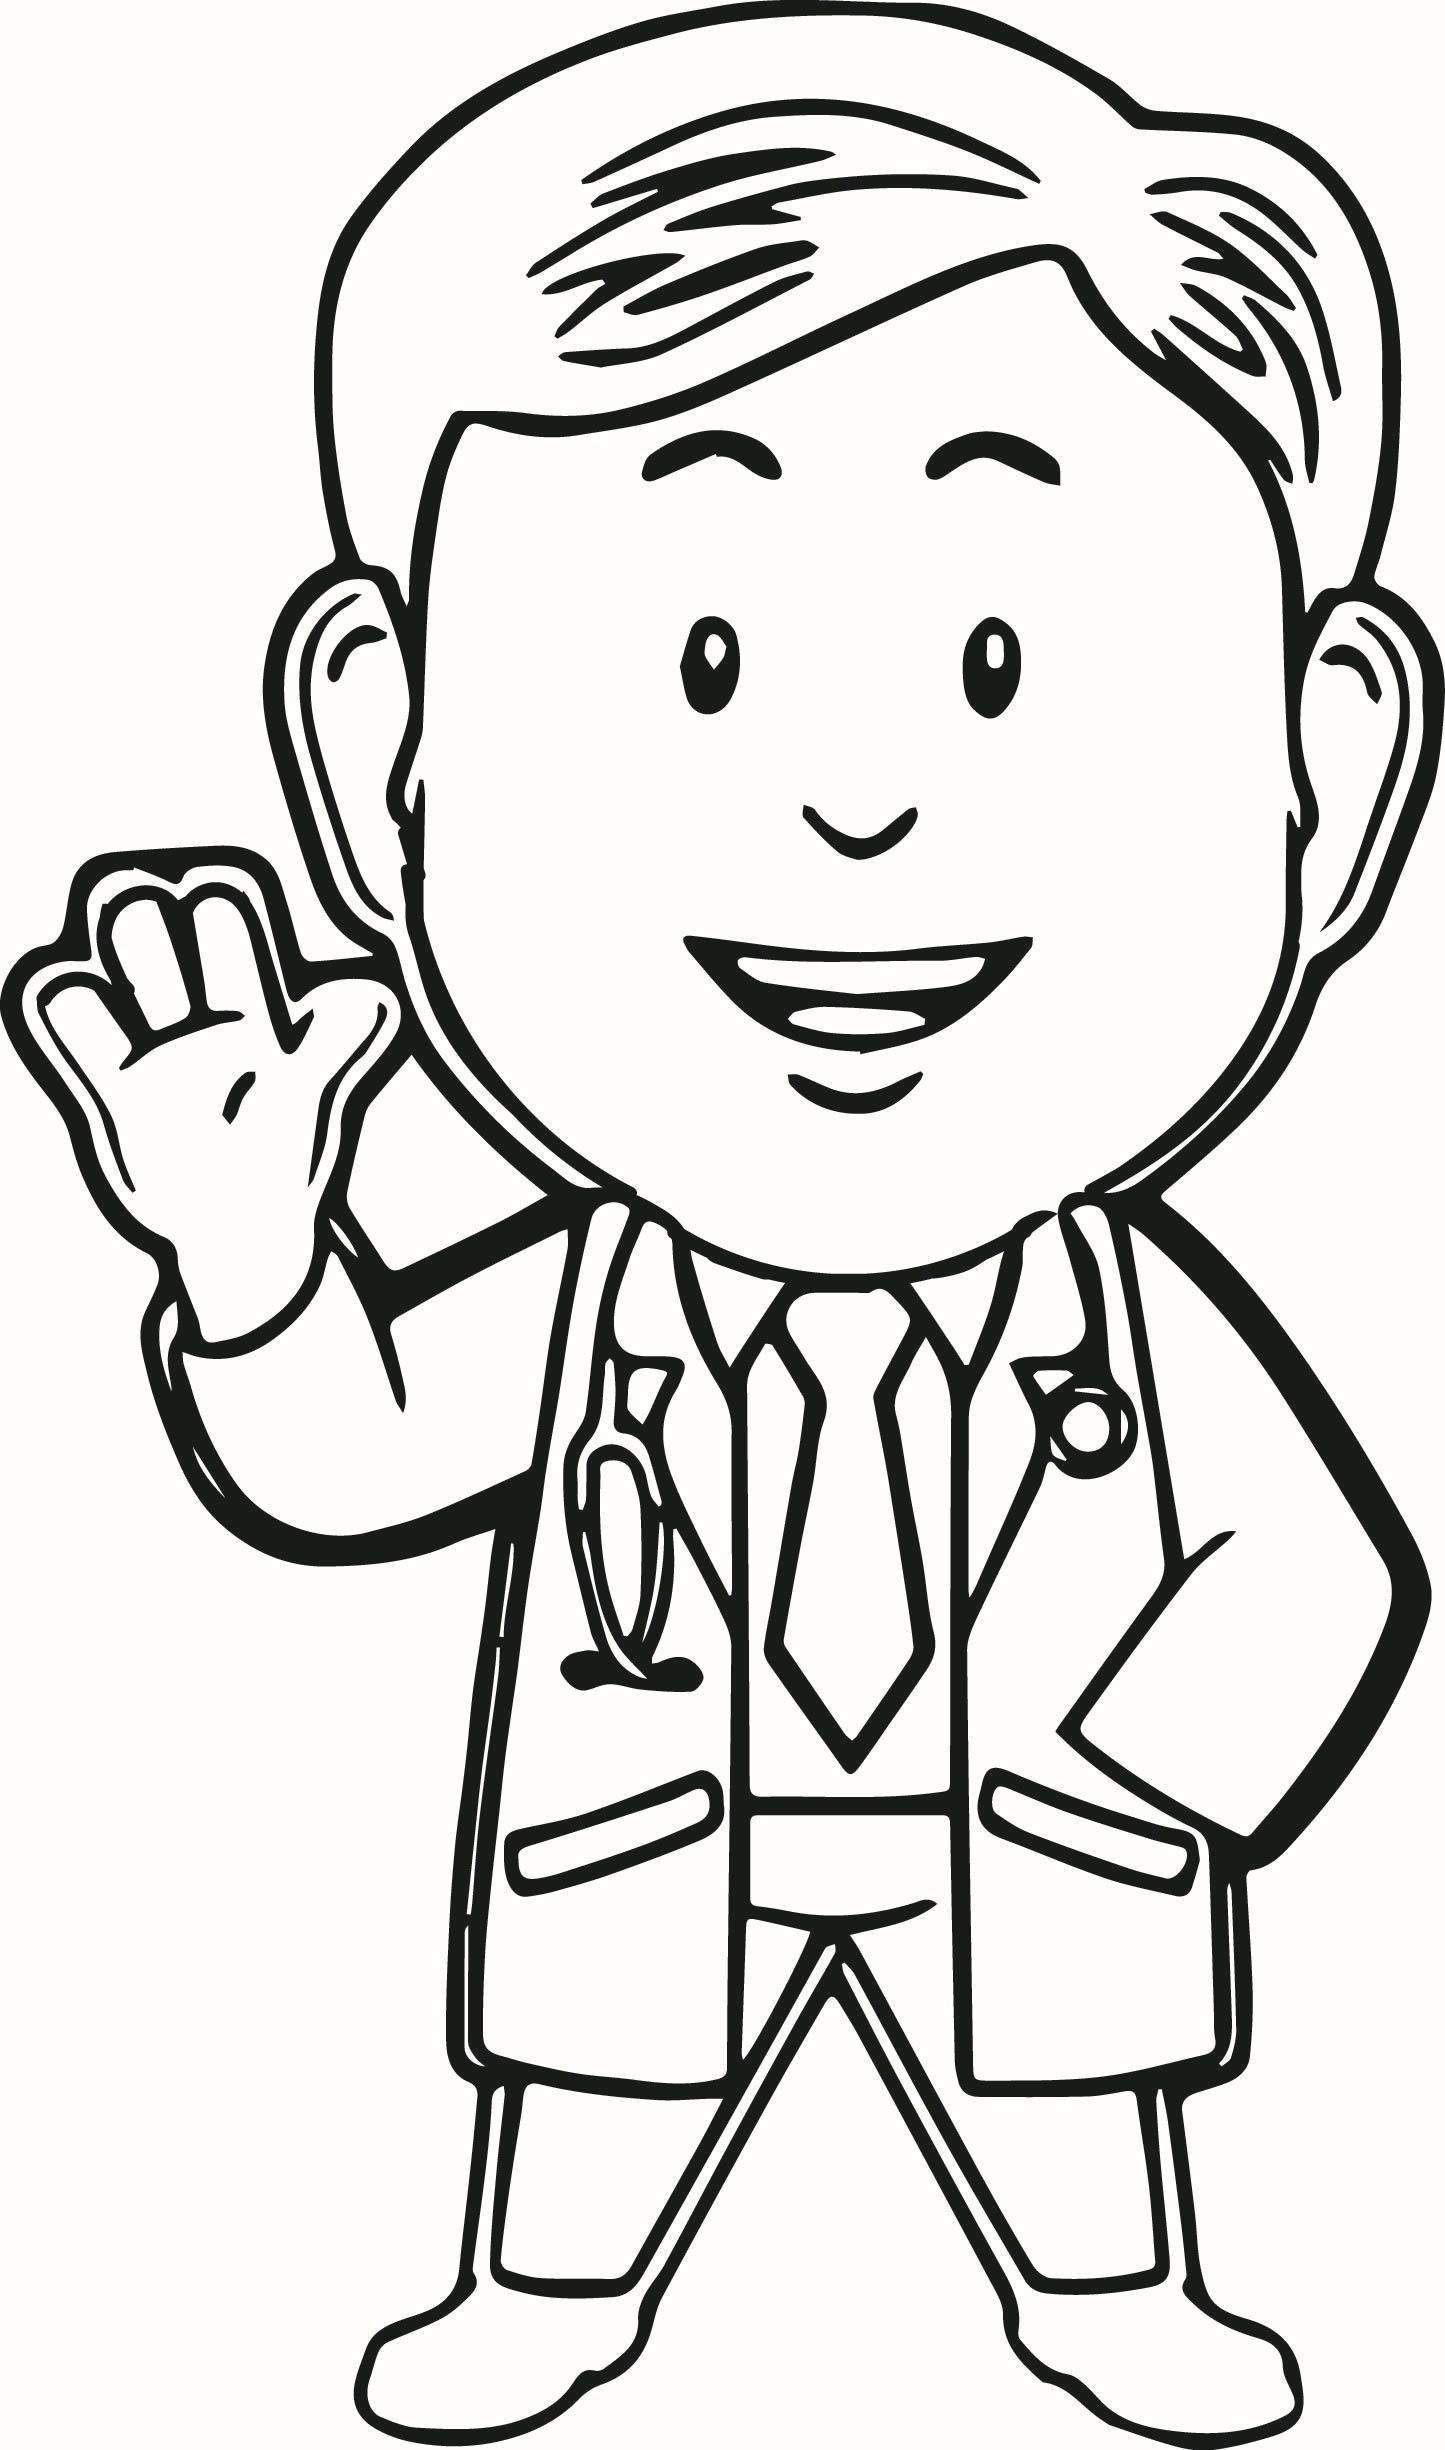 doctor-coloring-page-0001-q1